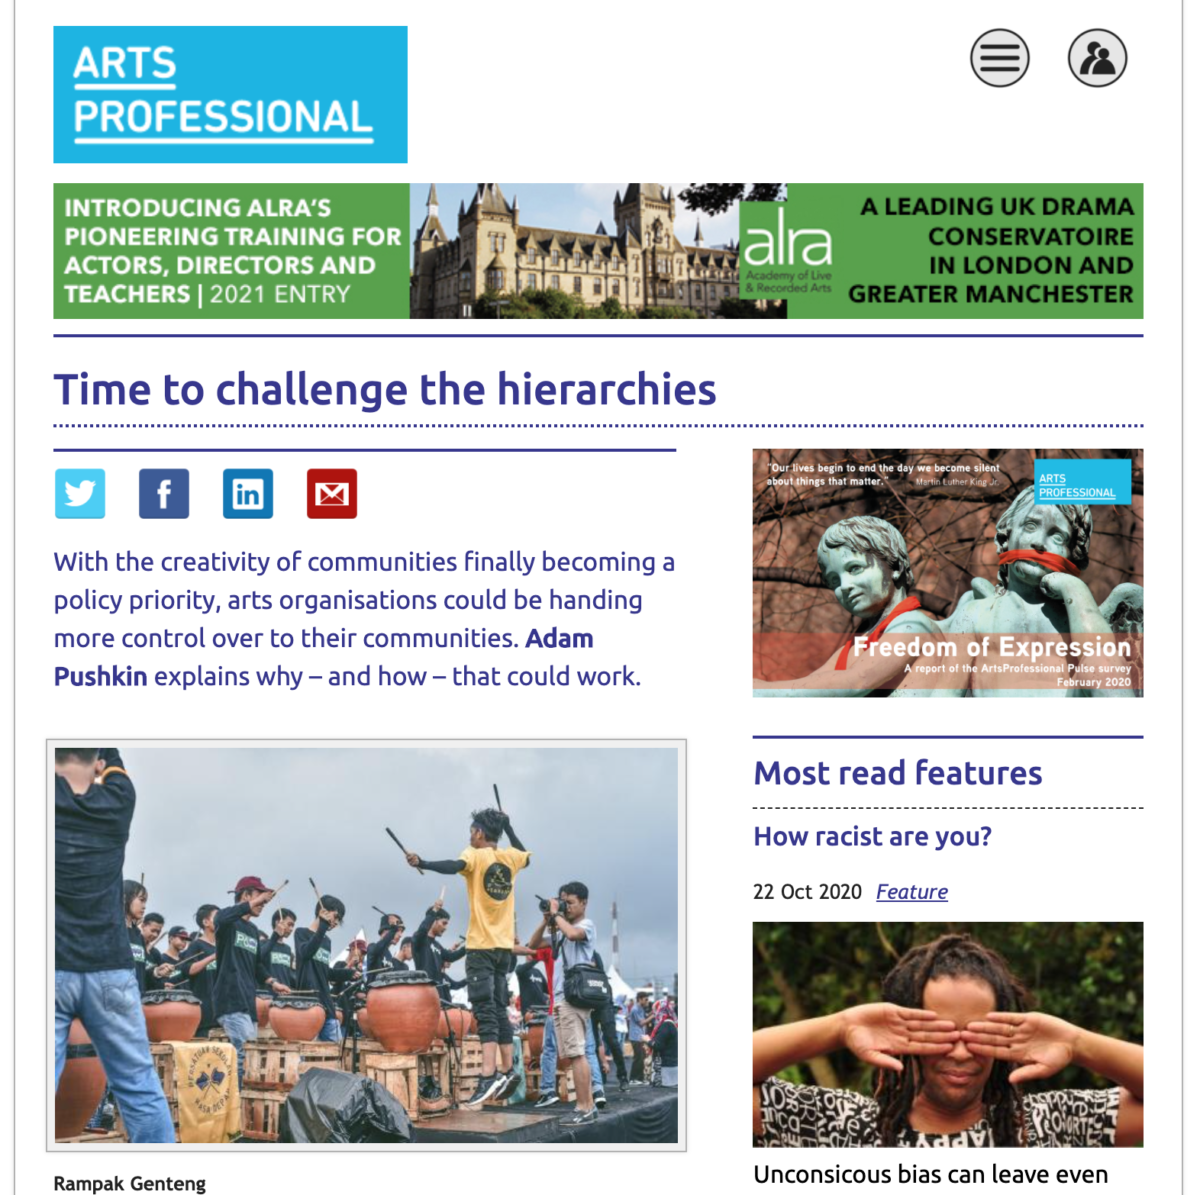 Time to change the hierarchies, Arts Professional article, Sept 2020